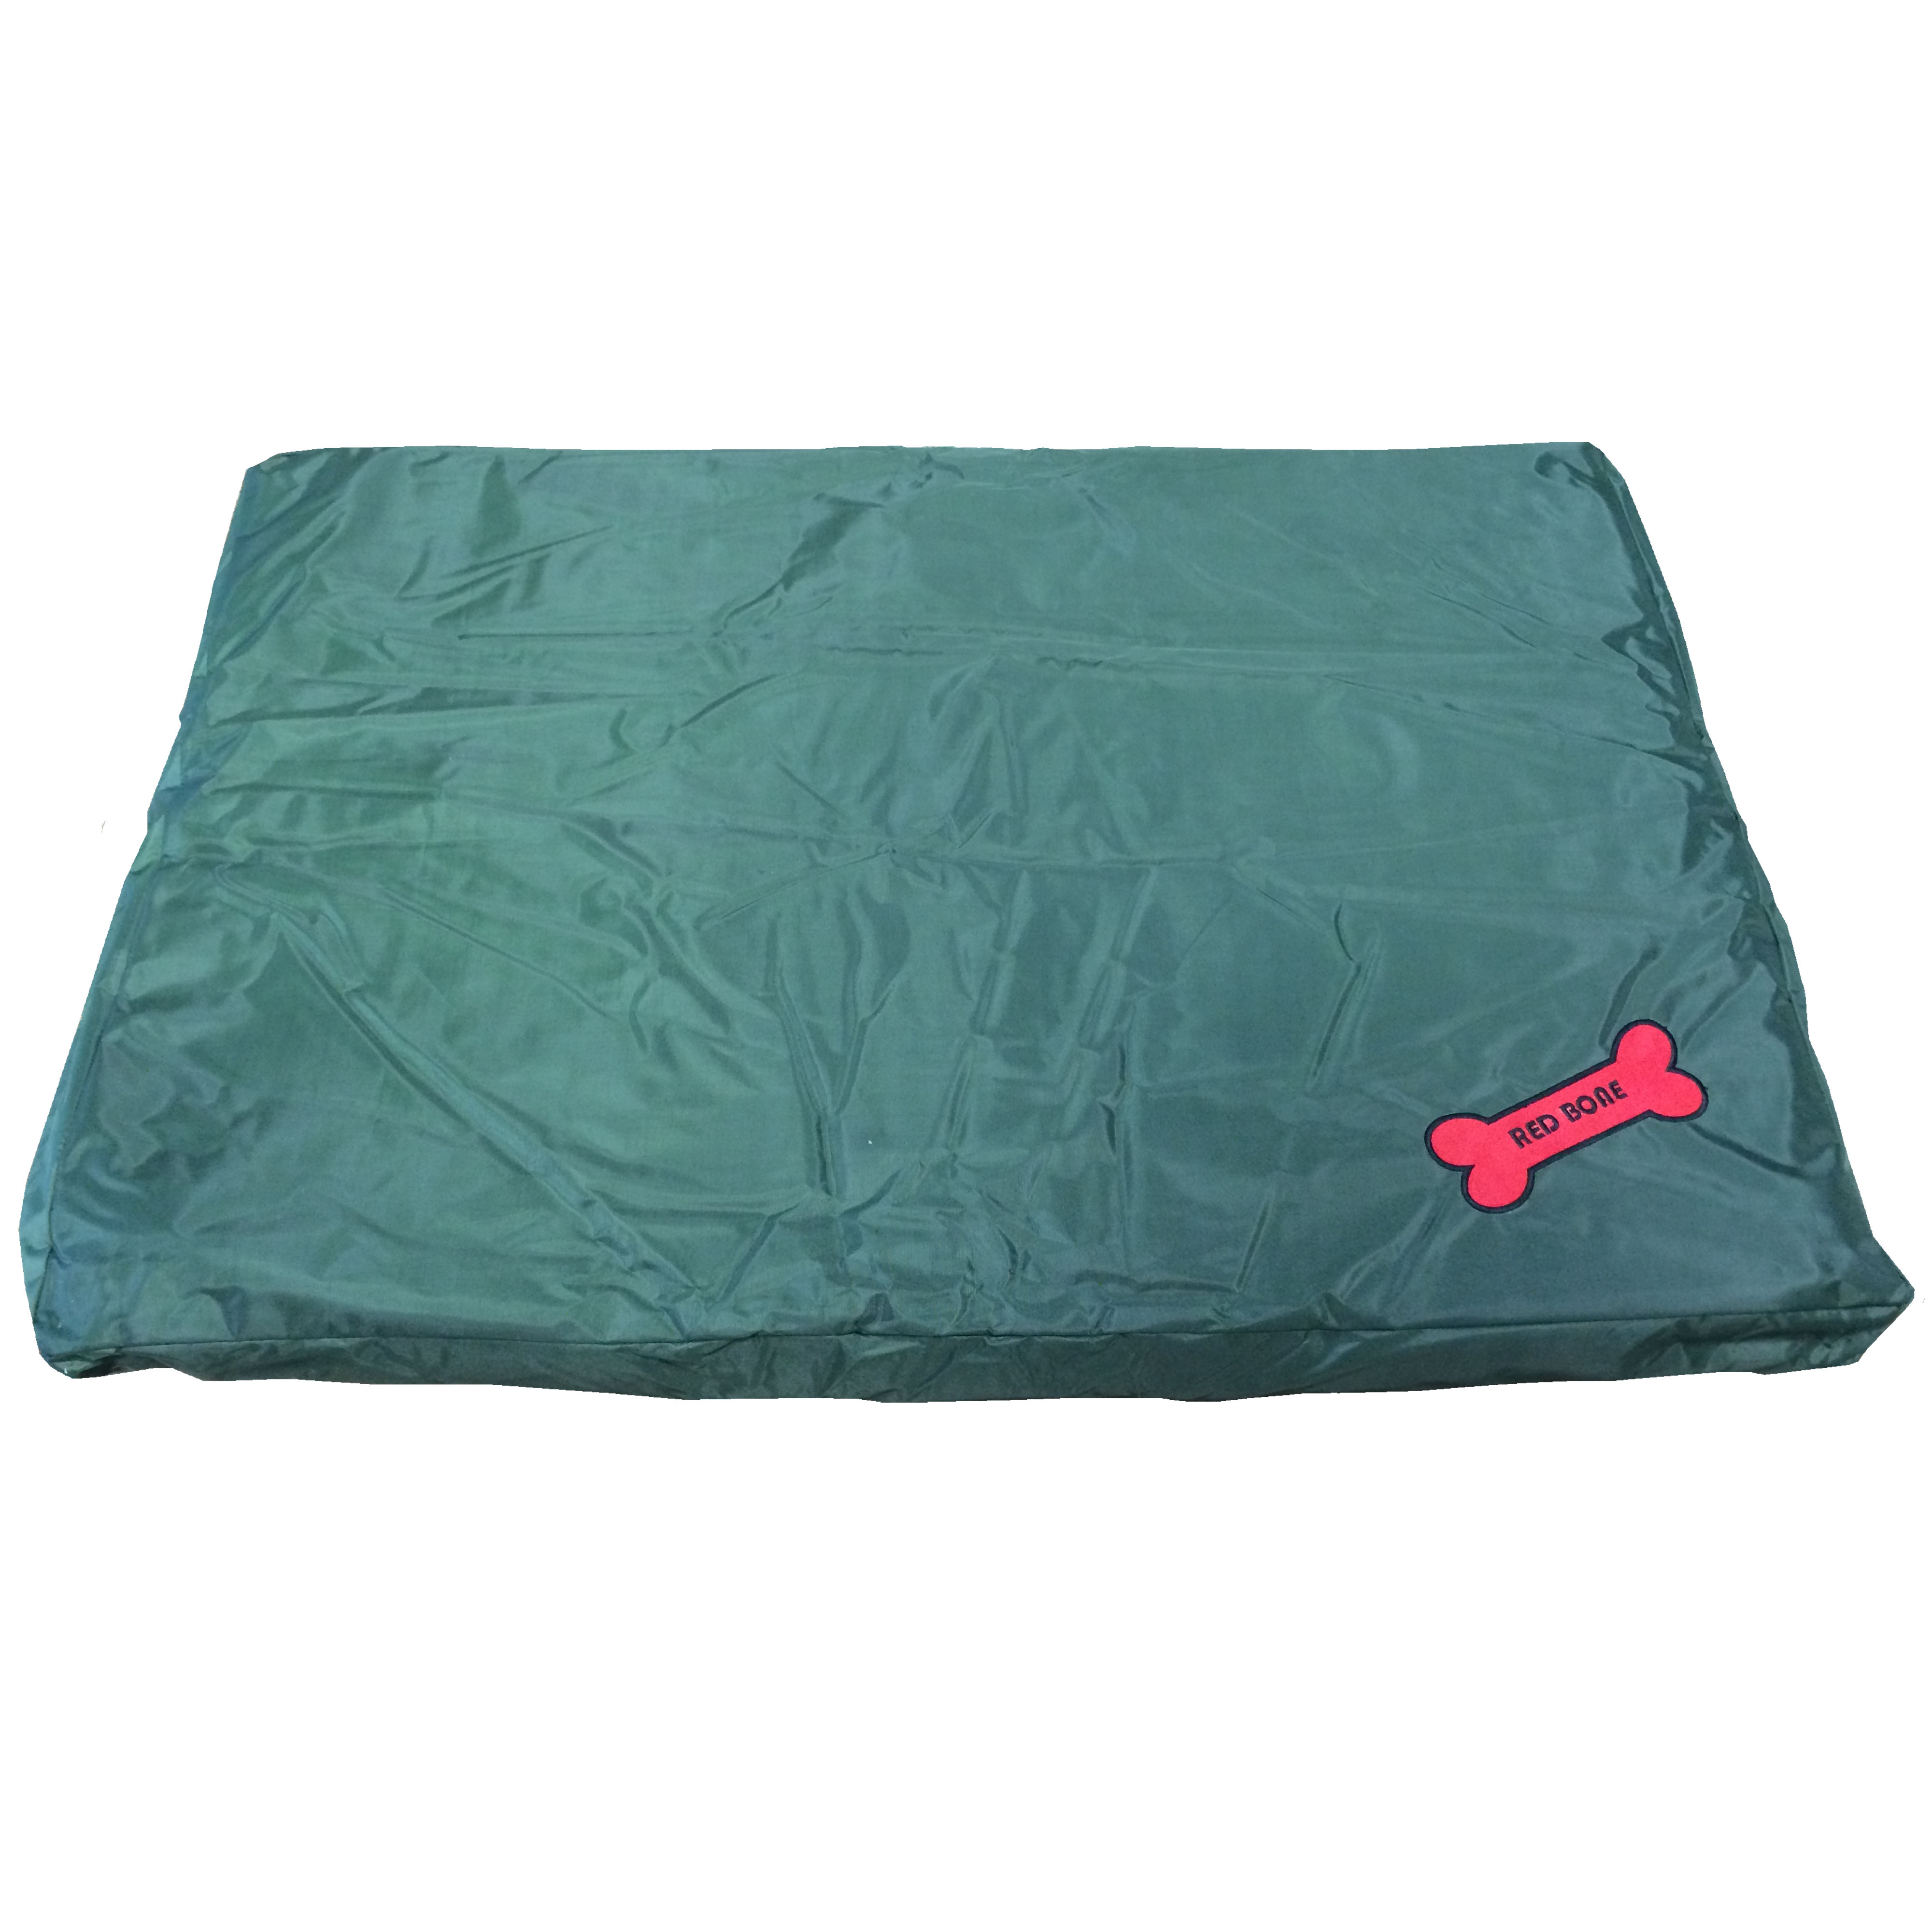 with pin removable in a good bed beds animal dog kingdom lounger the cover starts snooze and available classic colors